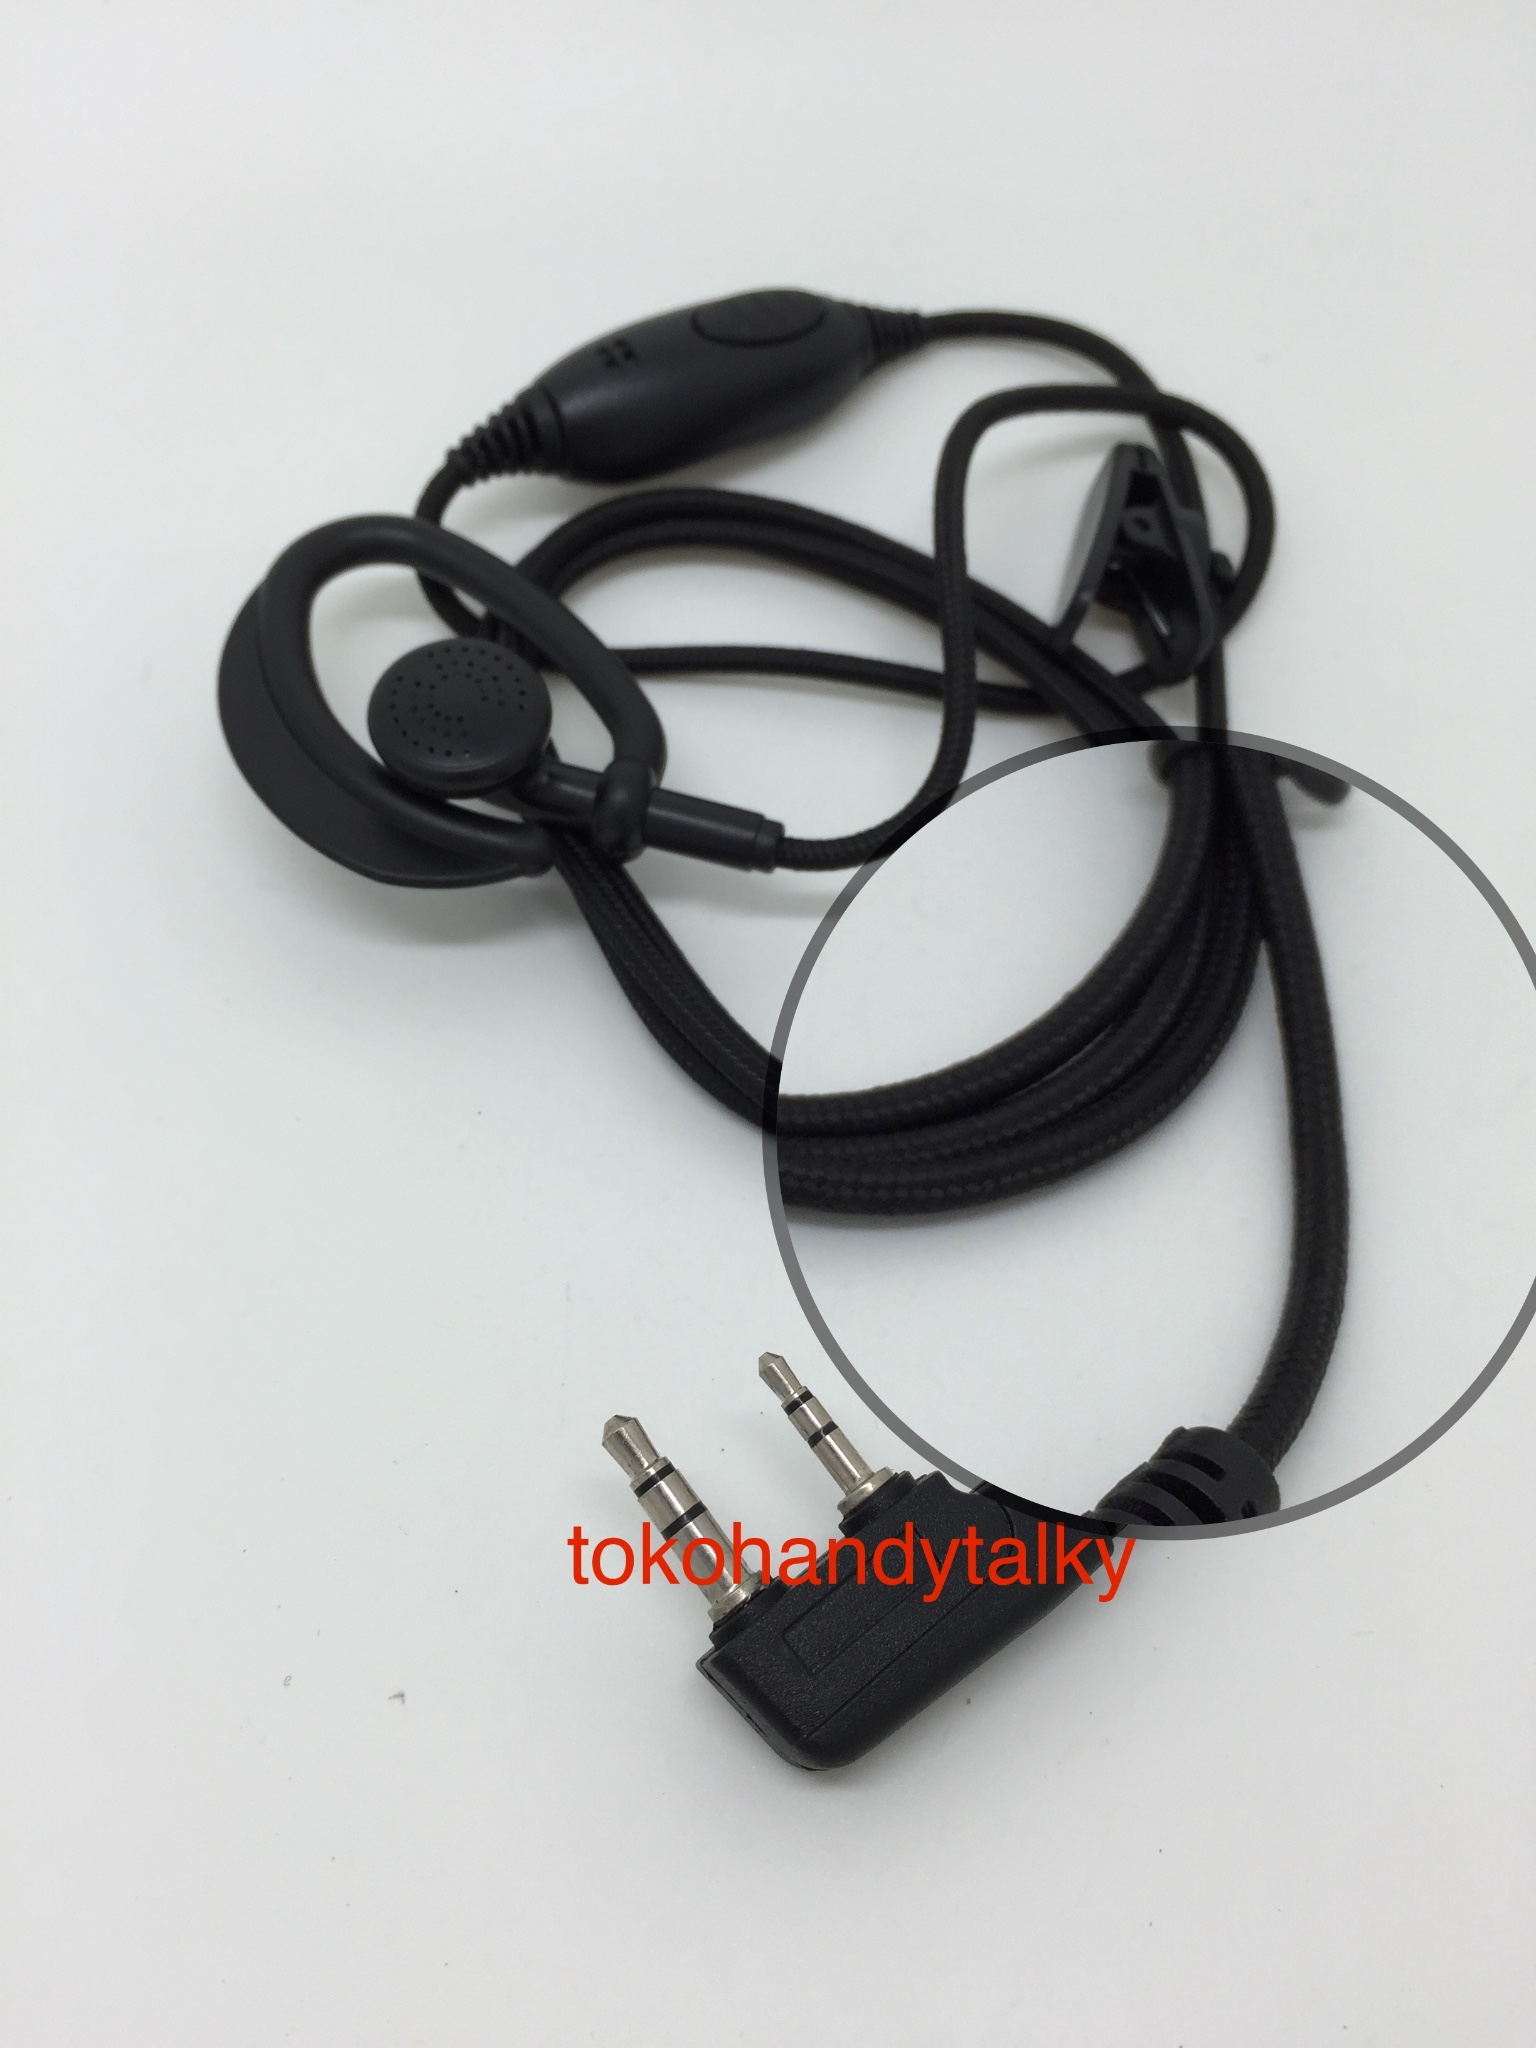 Jual Earphone Tali Ht China Kenwood Tokohandytalky Tokopedia Cina